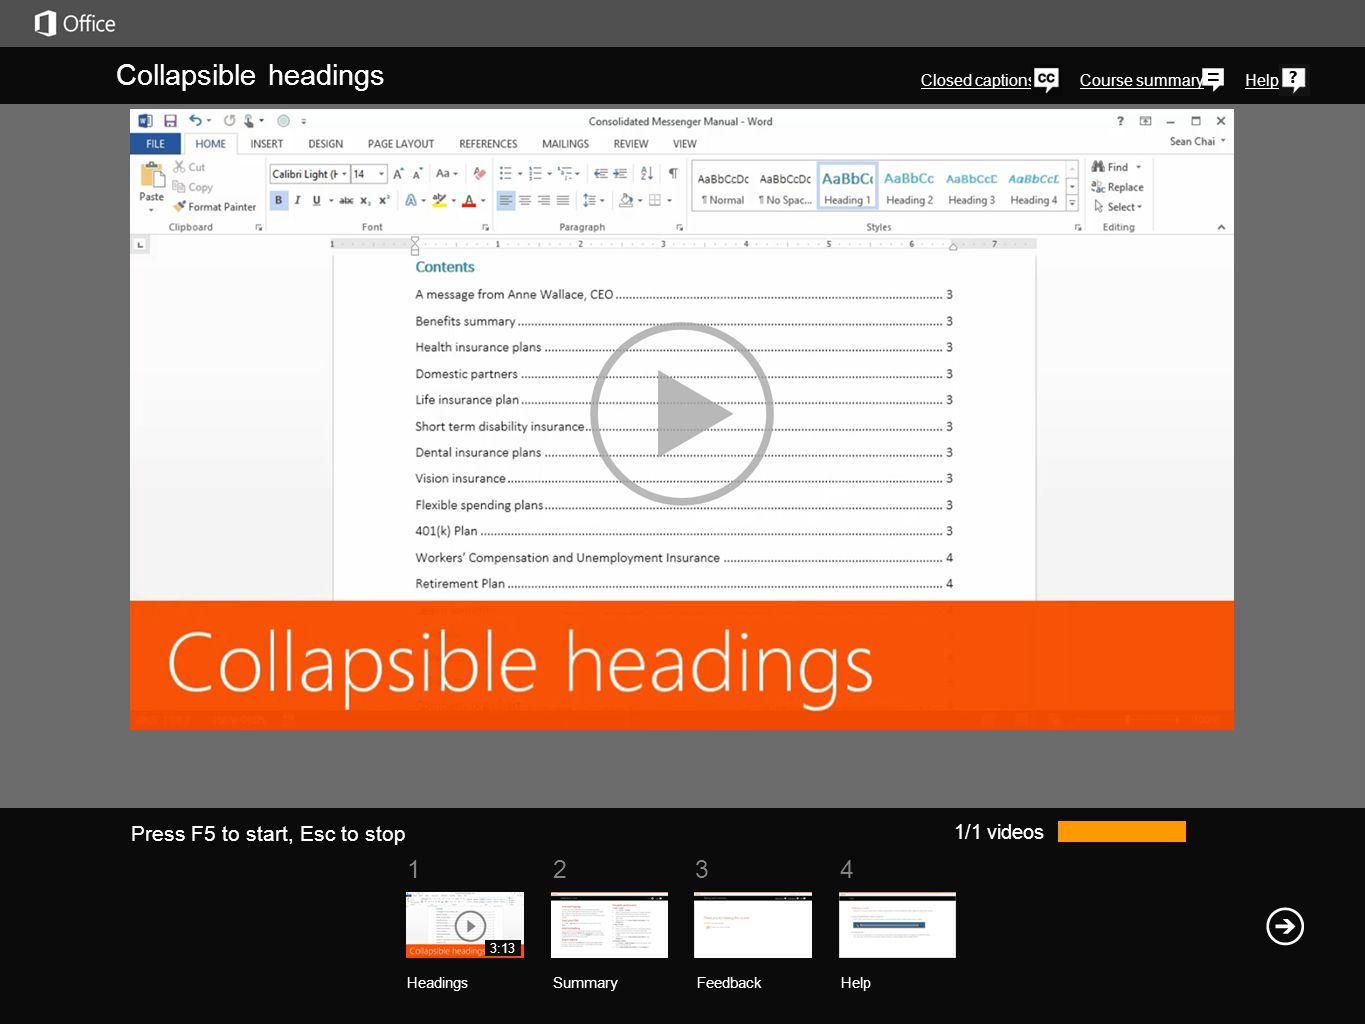 1234 Course summaryHelp Collapsible headings Closed captions 1/1 videos Headings SummaryFeedback Help 3:13 Press F5 to start, Esc to stop Here's a handy trick you can use if you're having trouble navigating a large complex document.Right-click a heading, click Expand/Collapse, and click Collapse All Headings.Now with all the body text out of the way, it's easier to browse through the document.The collapsed headings become something like a table of contents.To expand a section, click this triangle.